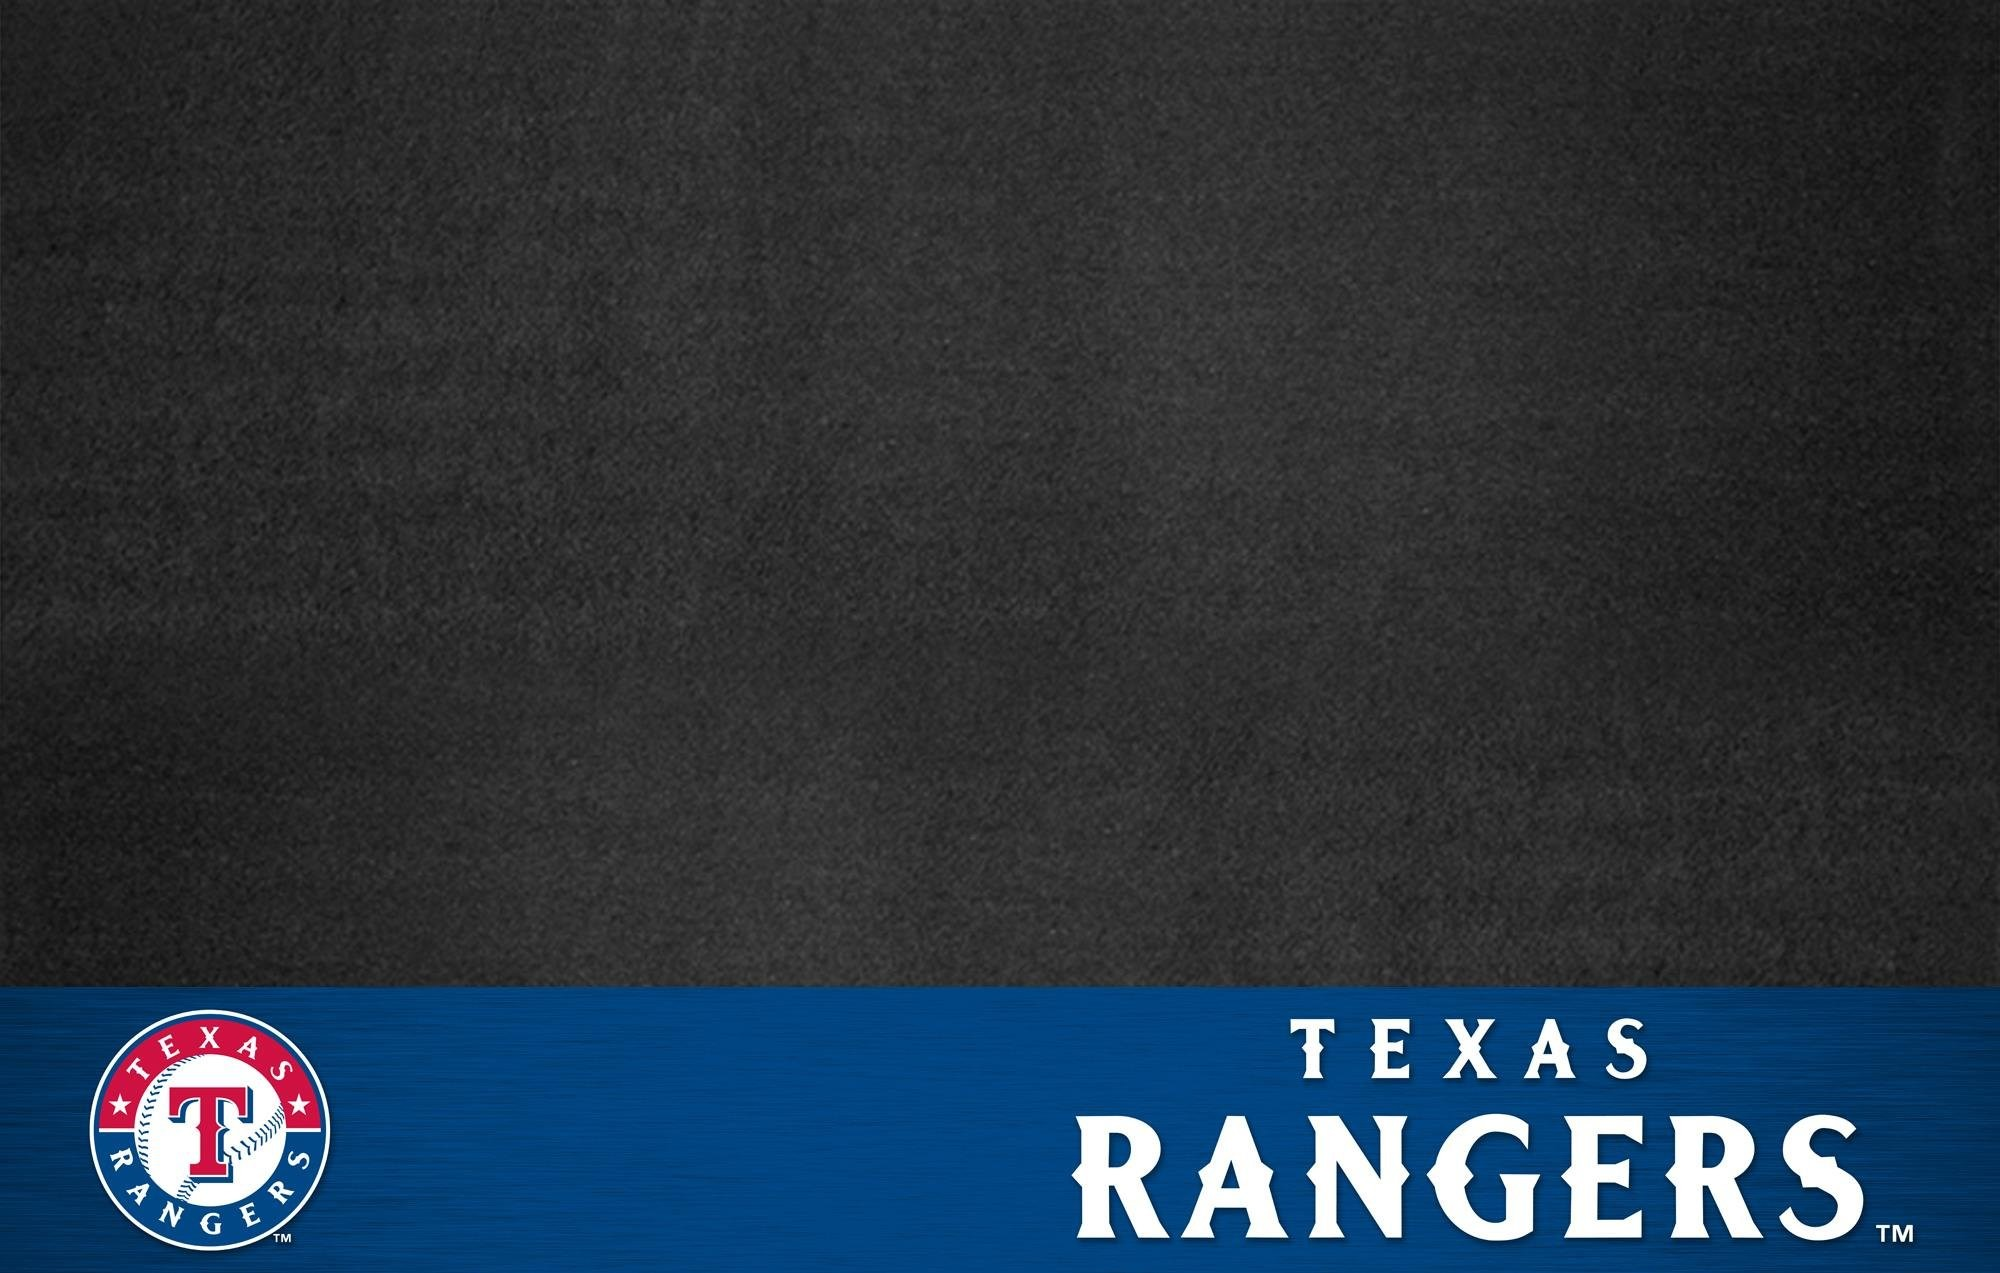 2000x1273 Texas Rangers iPhone Wallpapers (24 Wallpapers)